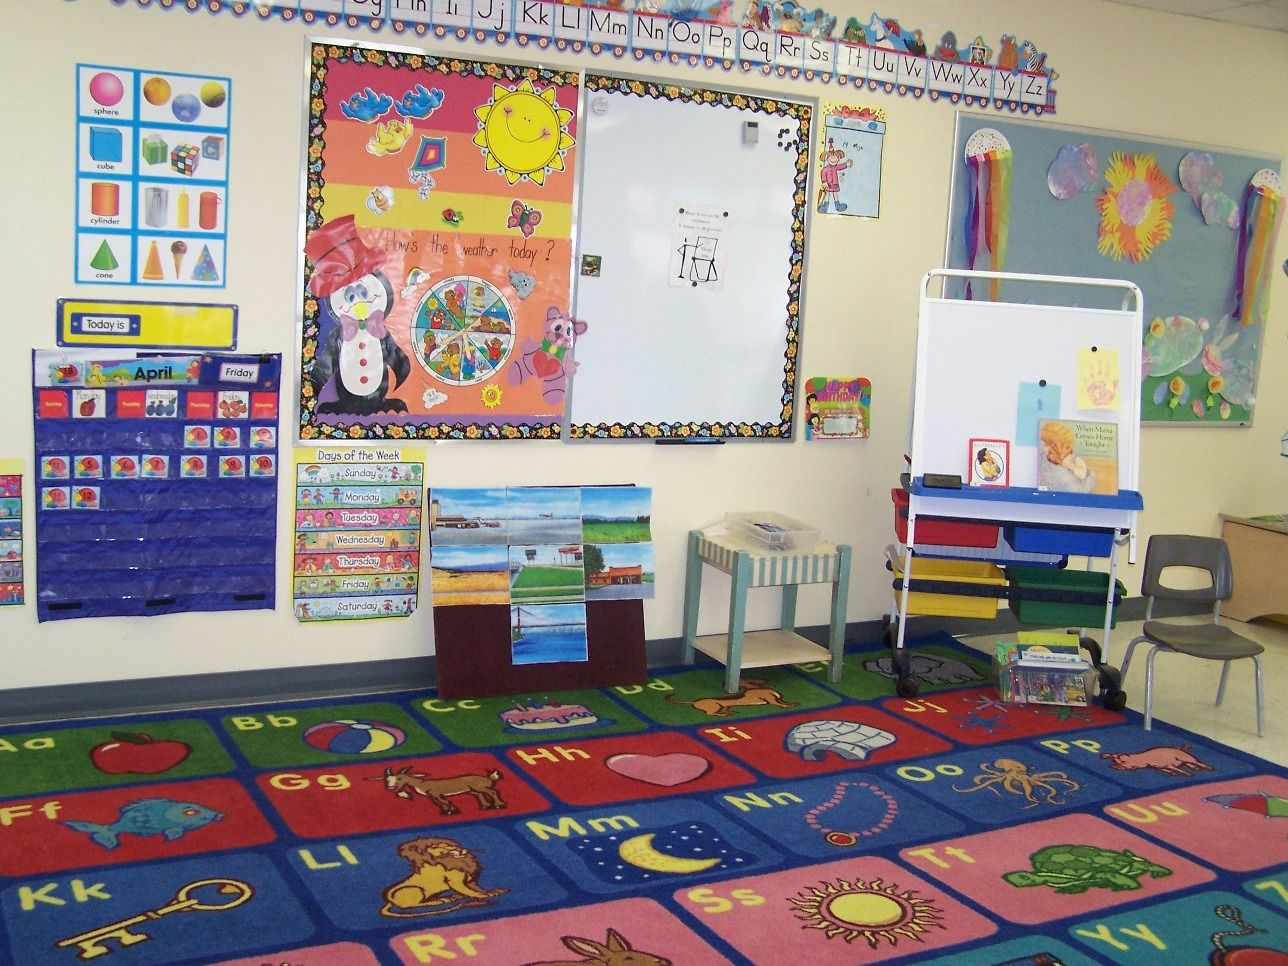 Classroom Ideas For Preschoolers ~ My classroom will be full of learning numbers shapes